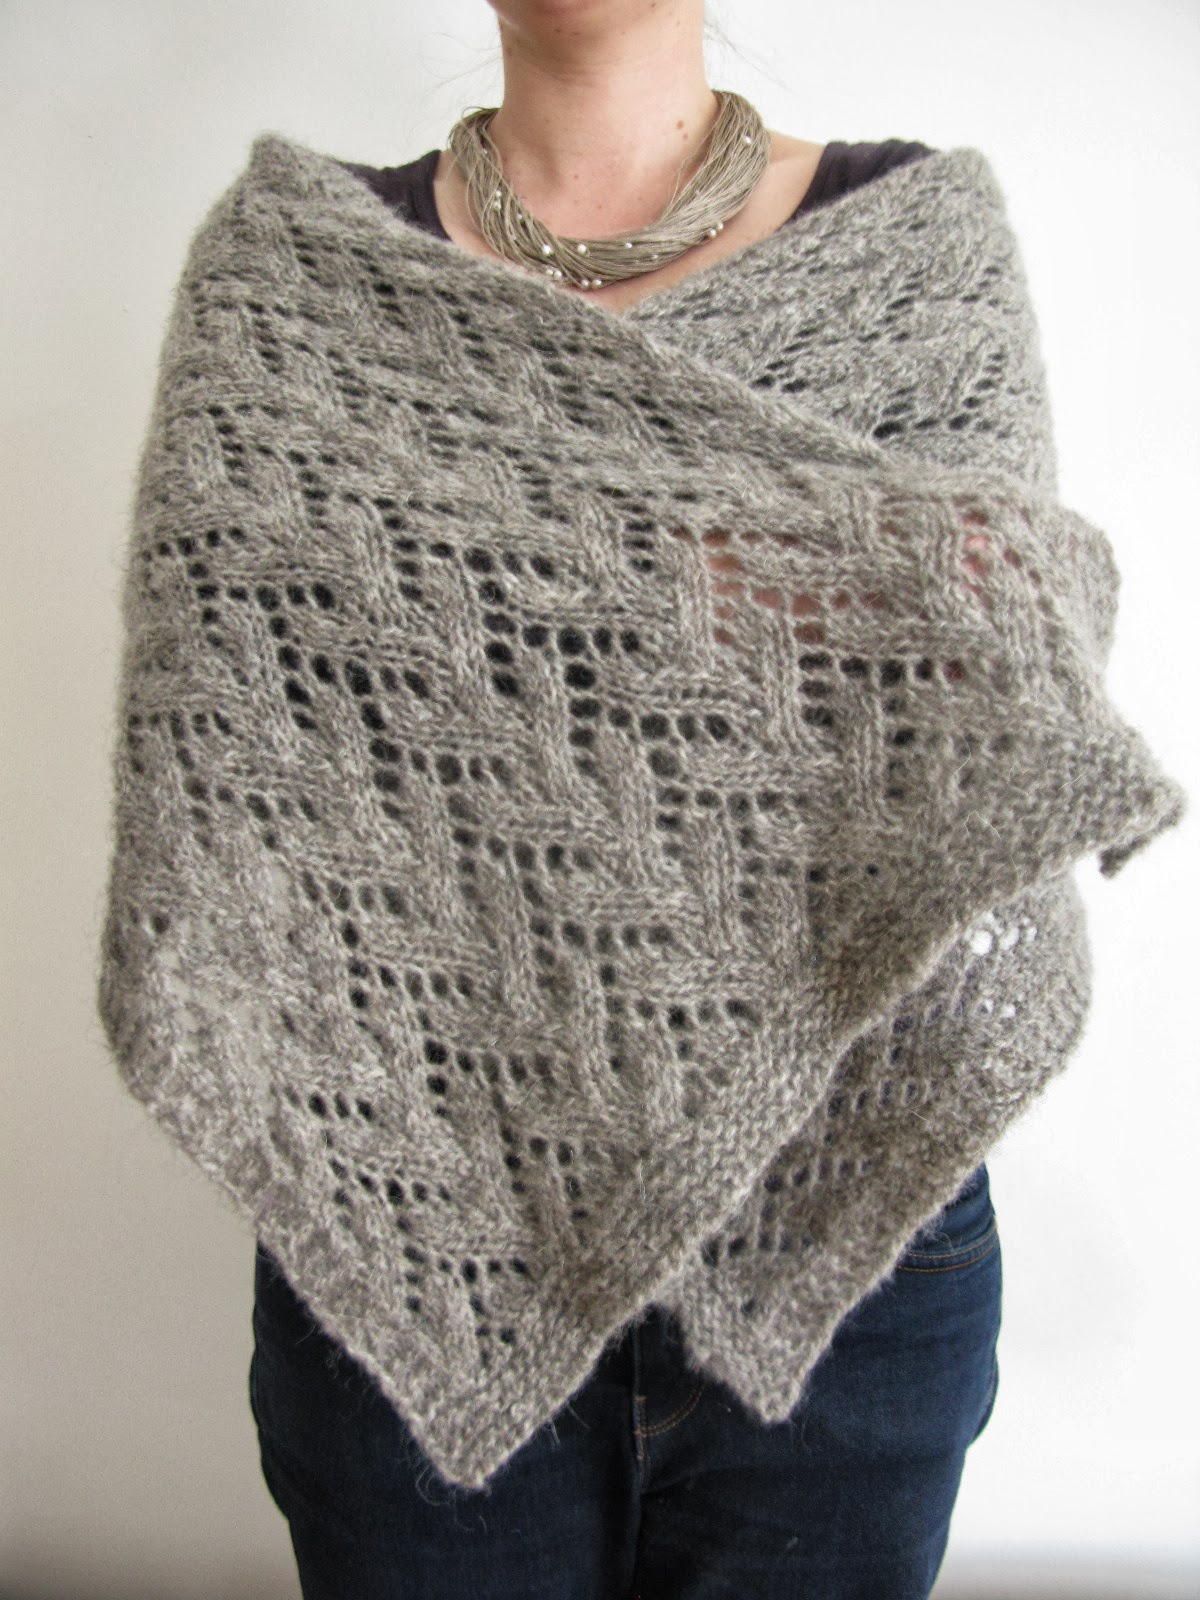 littletheorem: Felted Lace Wrap Pattern